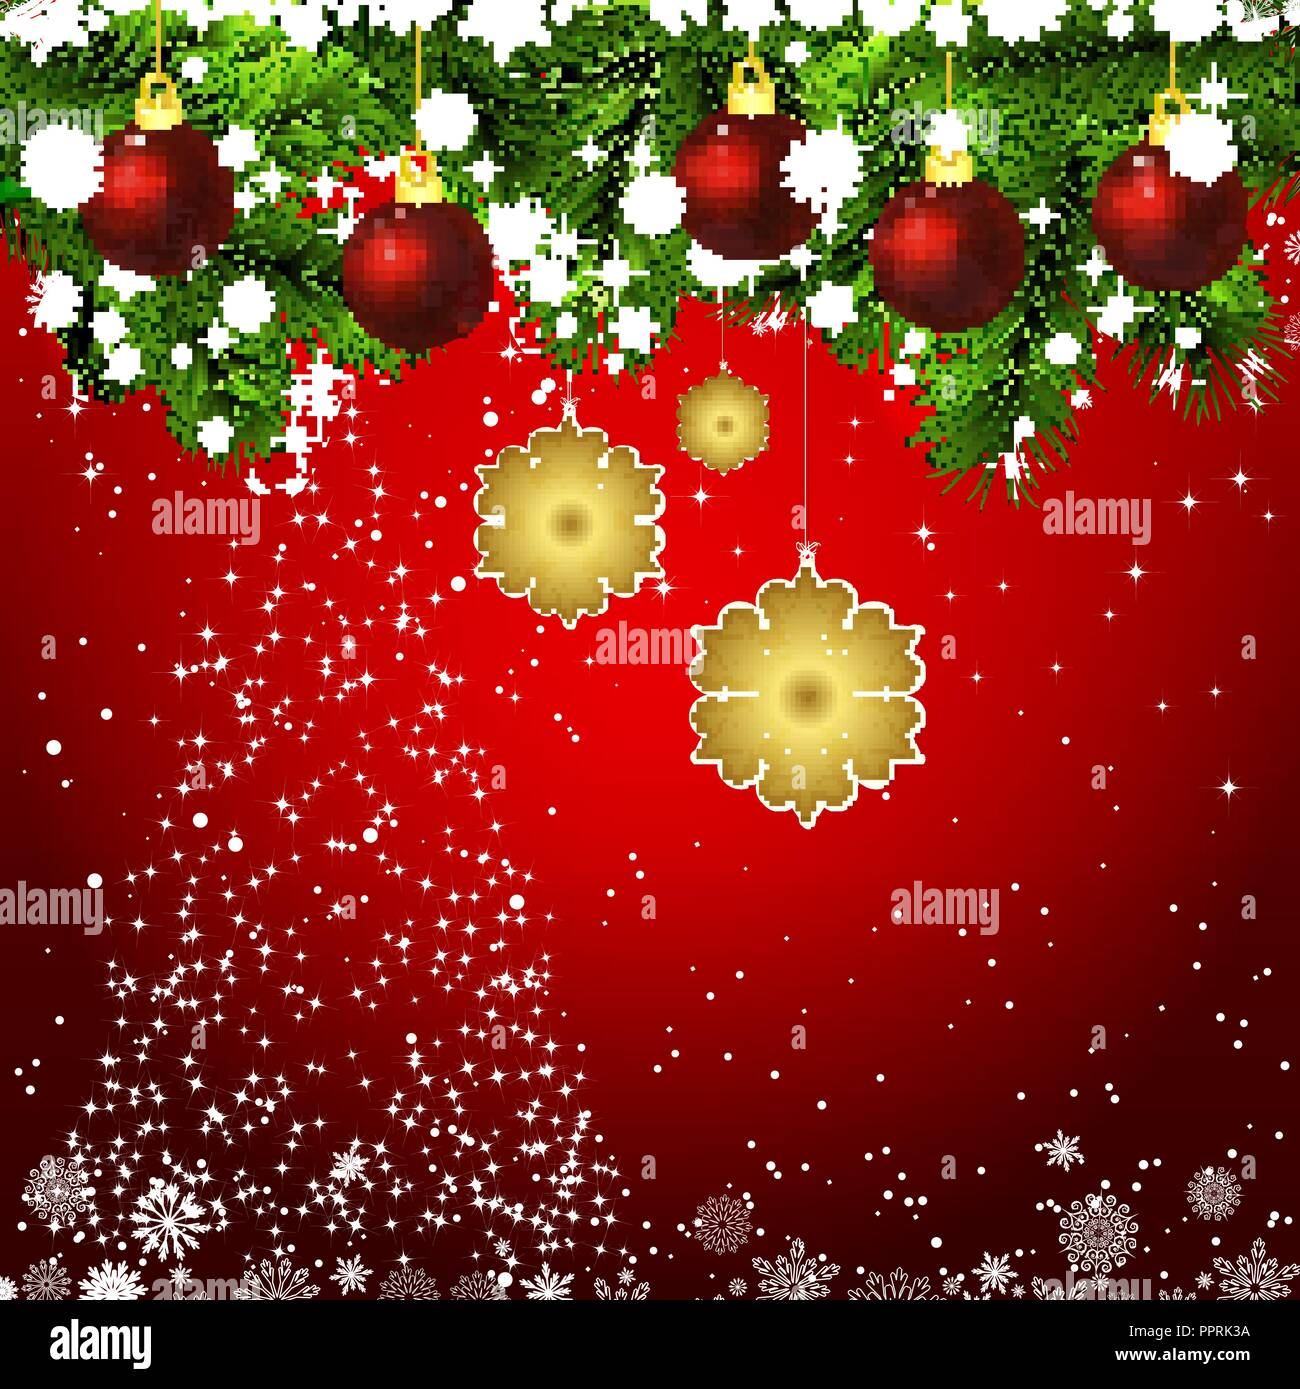 vector new year design background template card whit red christmas balls on the green branches silhouette of a christmas tree made of stars fallin